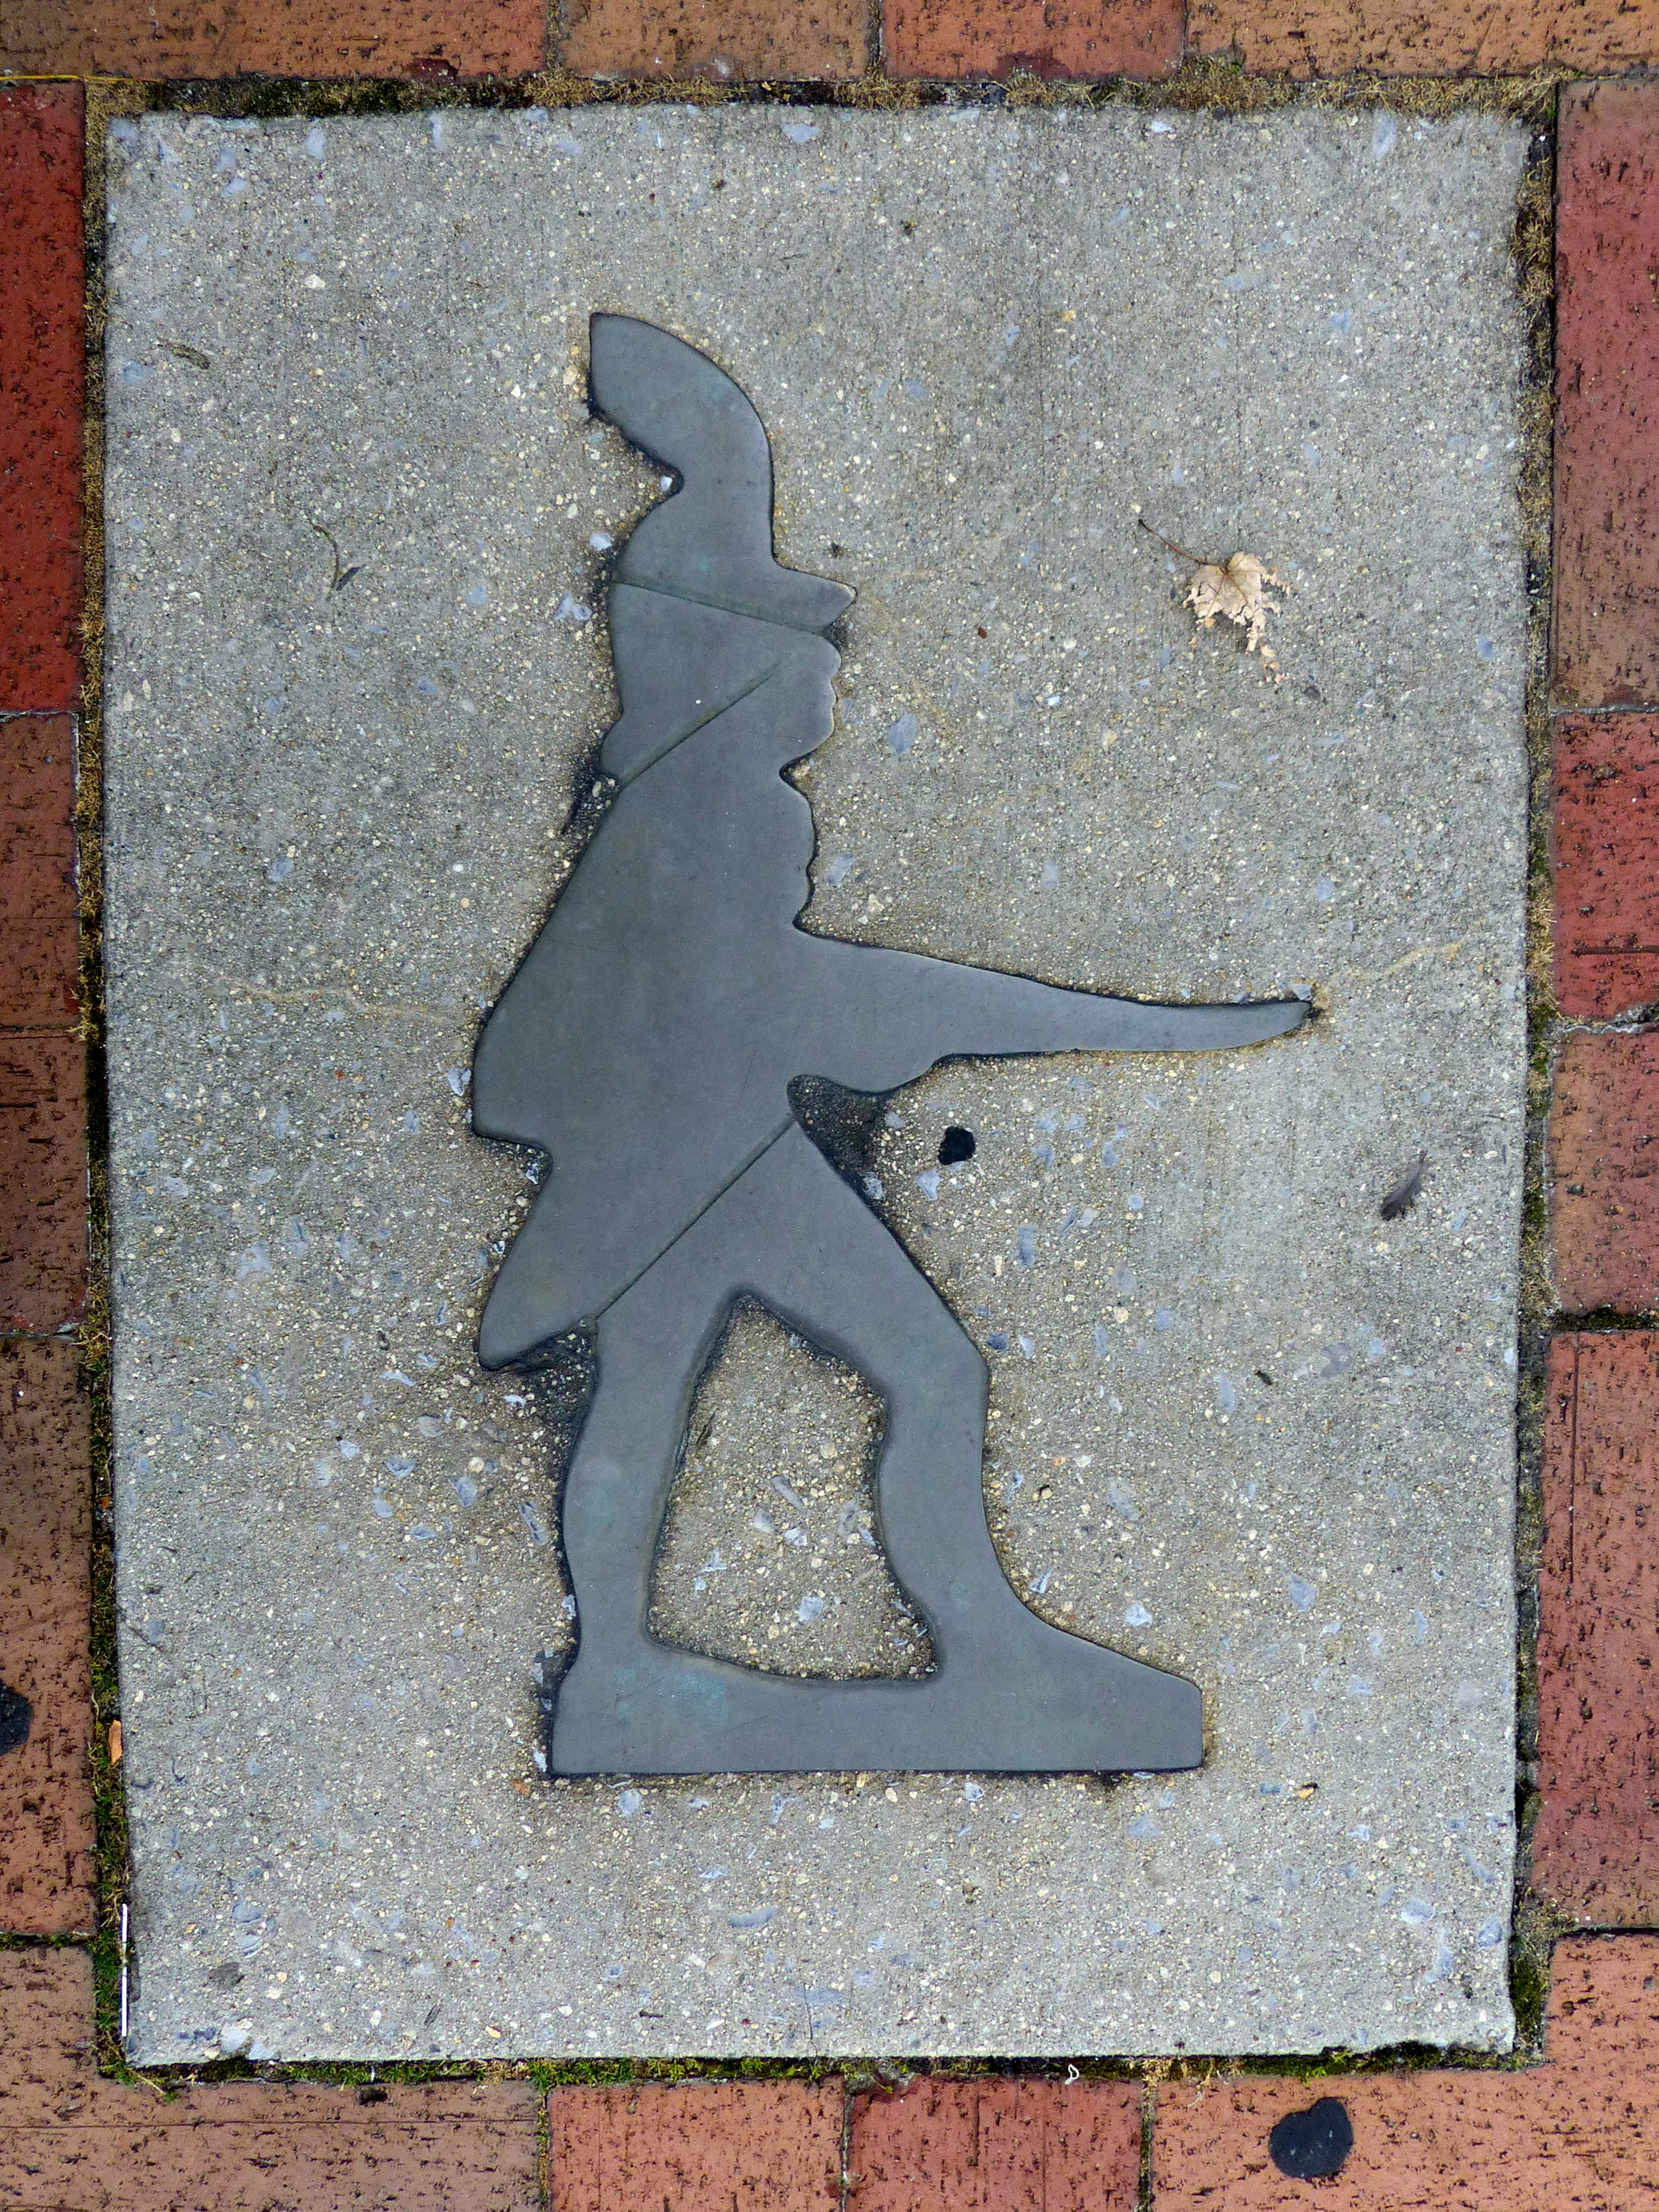 Little Heiskell<br>Embedded in the Sidewalk<br>Washington County Courthouse